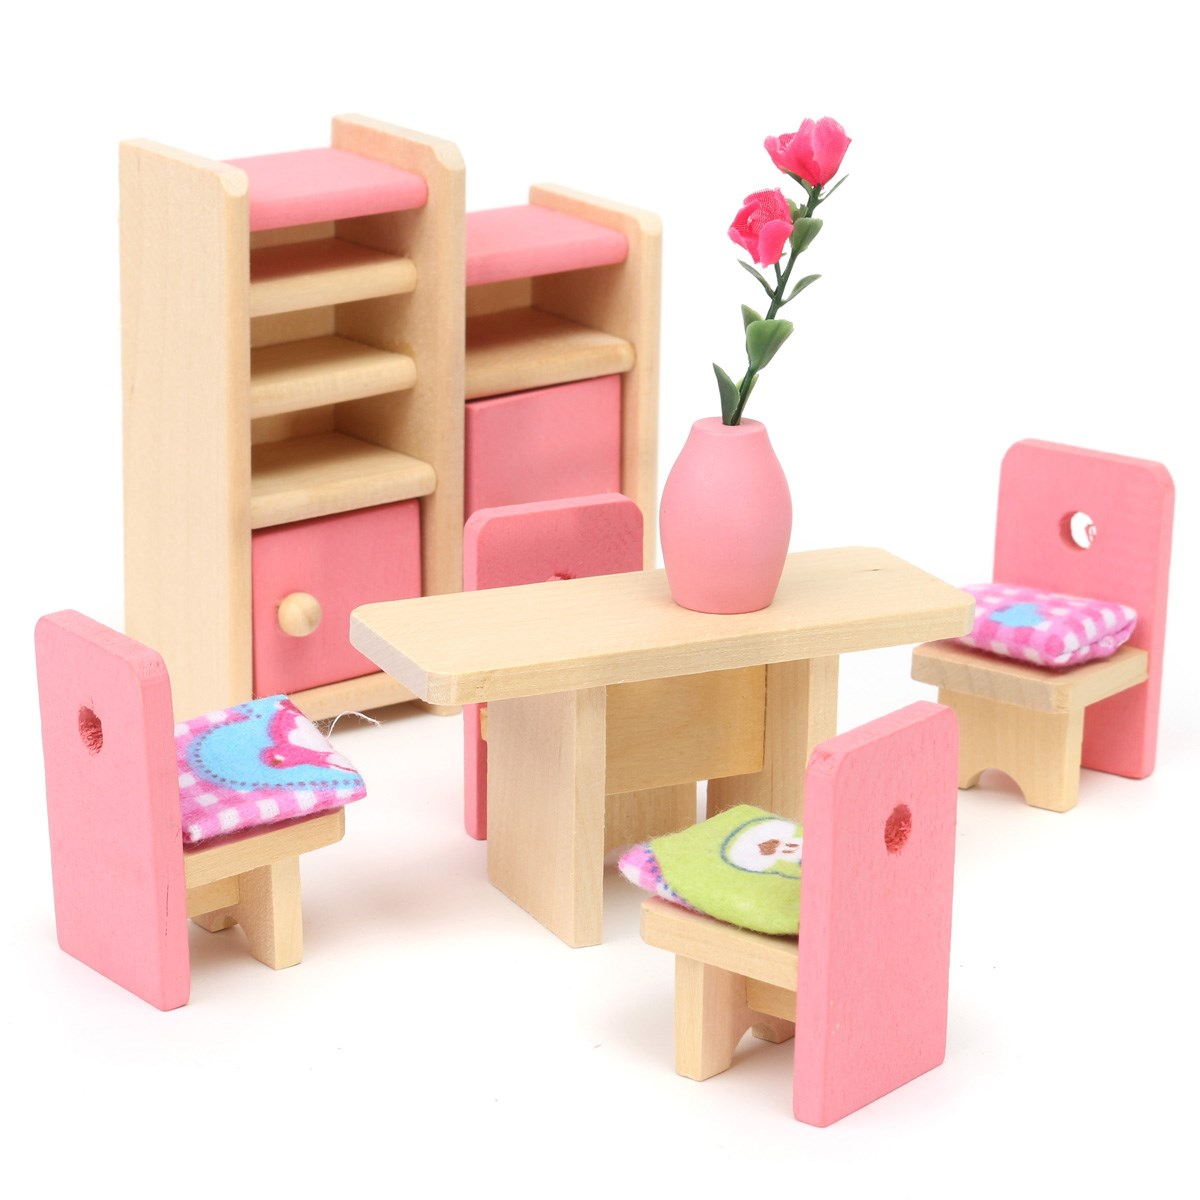 Beautiful Doll Furniture For Sale Part - 9: Wooden Delicate Dollhouse Furniture Toys Miniature For Kids Children  Pretend Play 6 Room Set/4 Dolls Toys